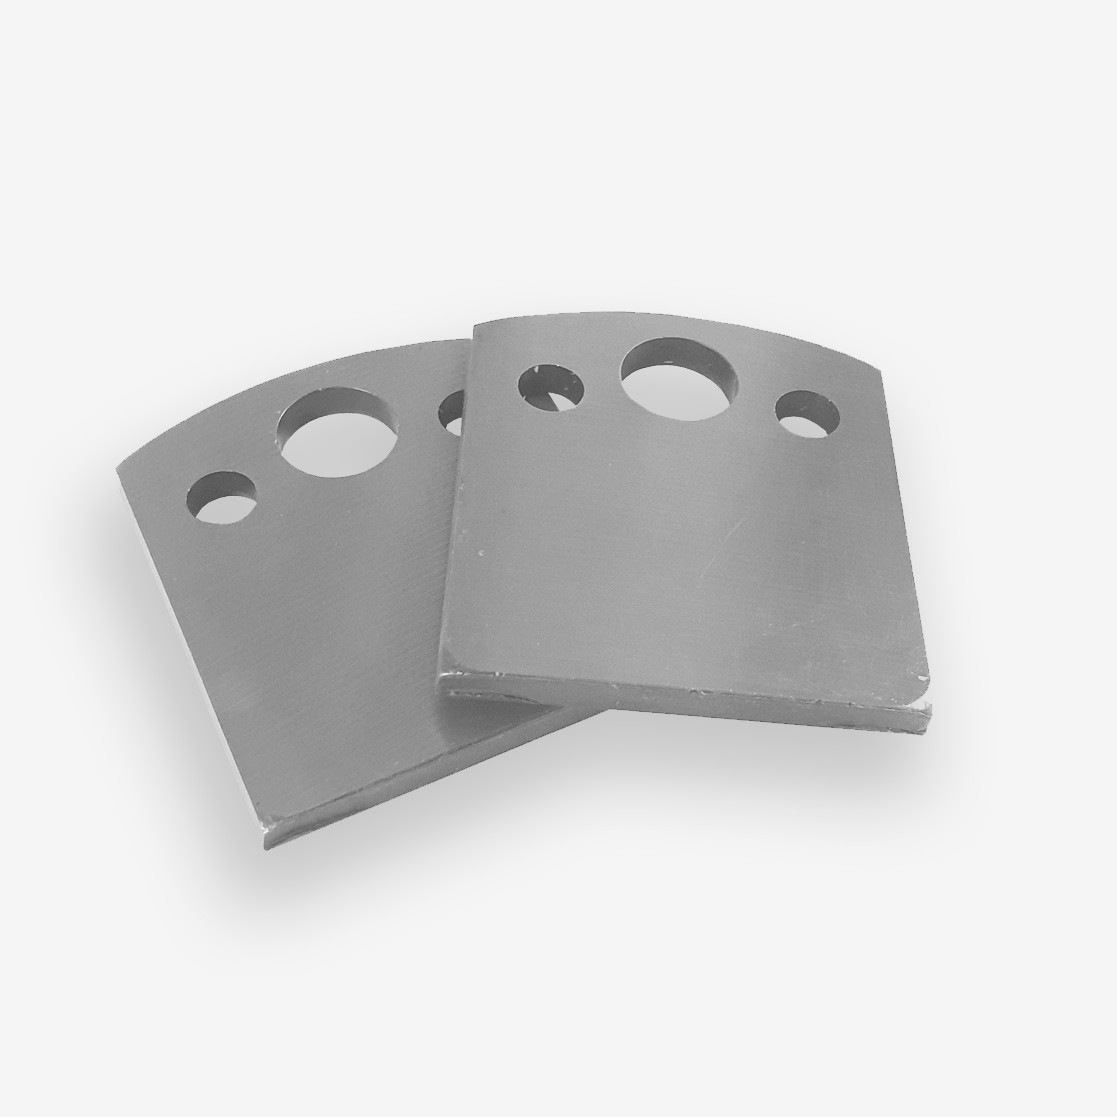 Euro Rebate Cutter/Limiter Blanks